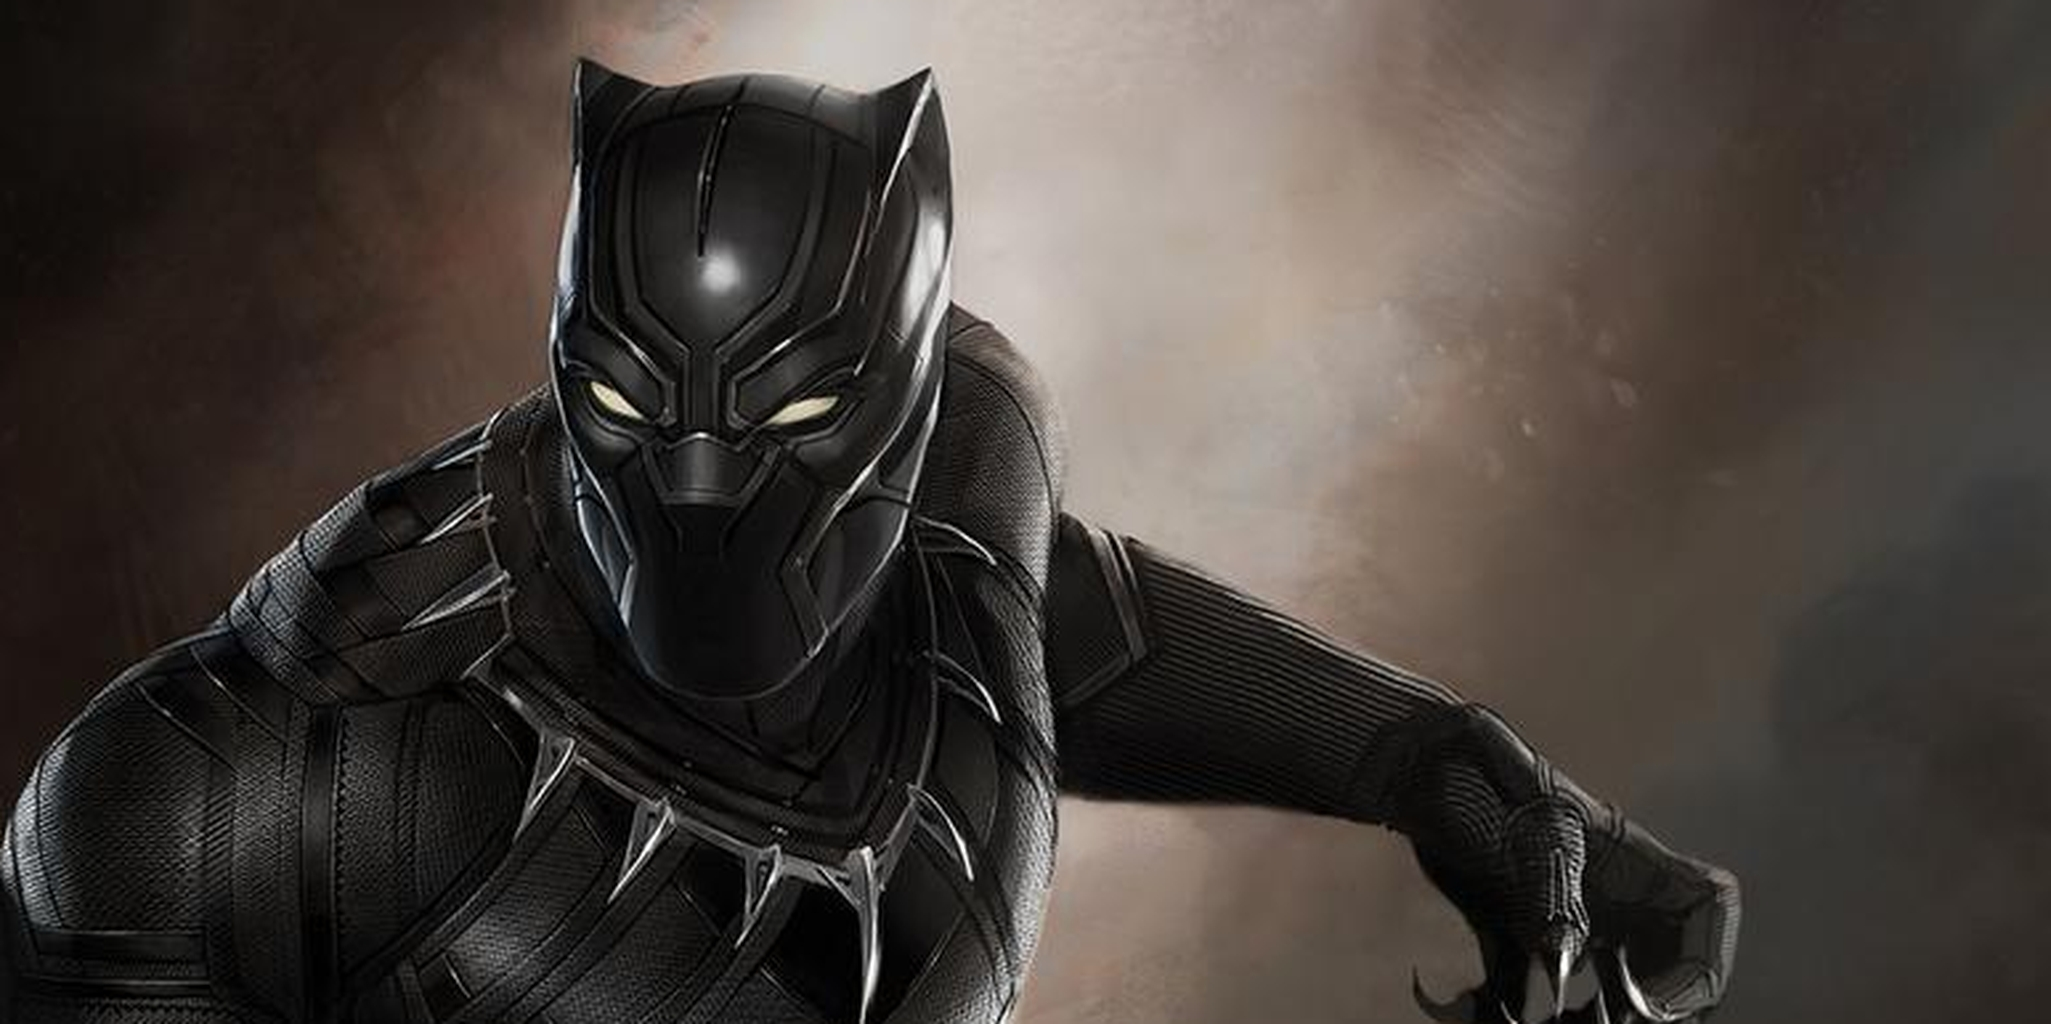 Black Panther Wallpapers Animal Hq Black Panther Pictures 4k Wallpapers 2019